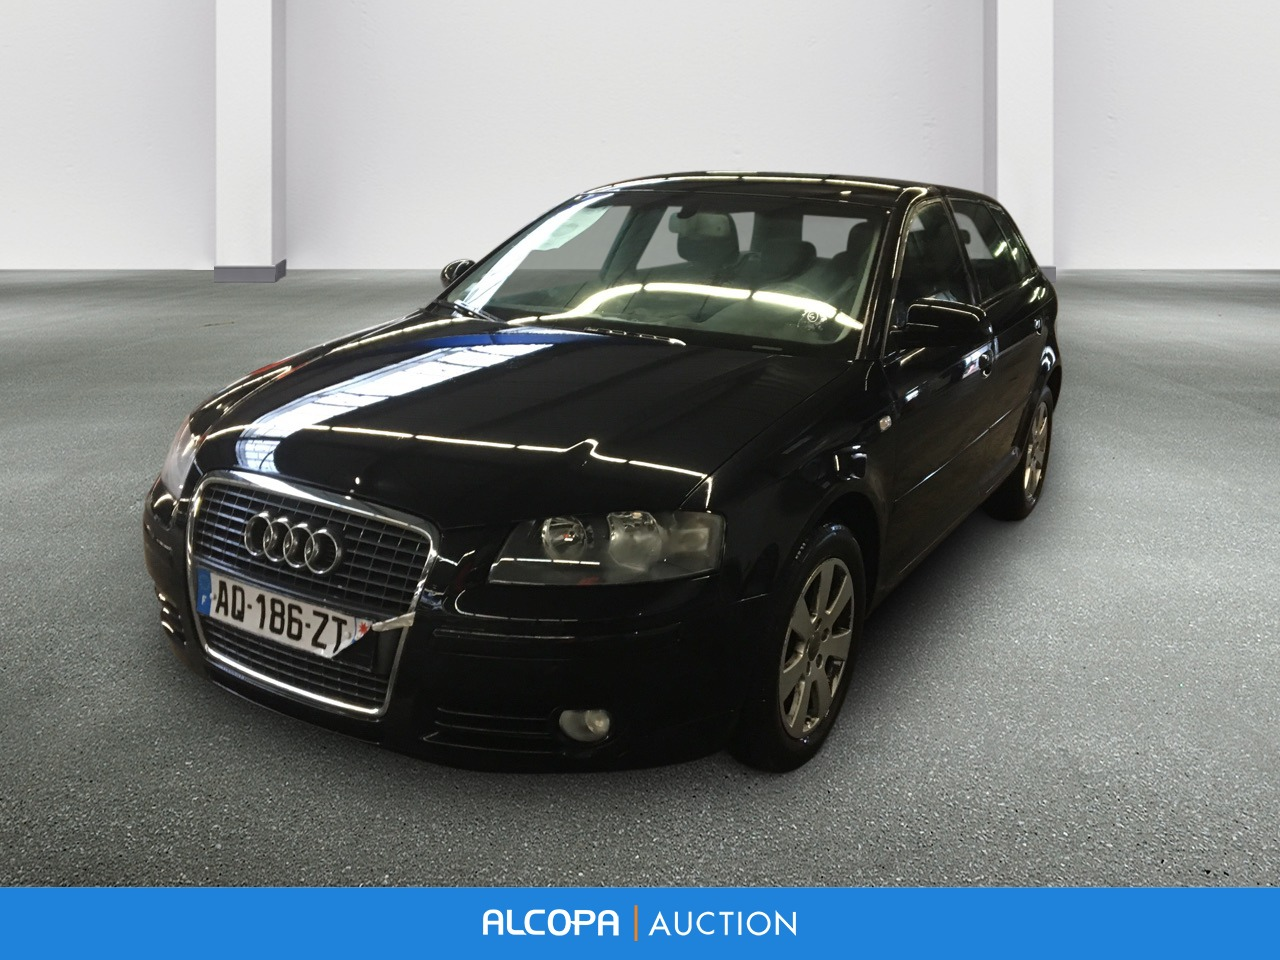 audi a3 sportback 04 2008 09 2012 a3 sportback 1 9 tdi 105 ambition alcopa auction. Black Bedroom Furniture Sets. Home Design Ideas